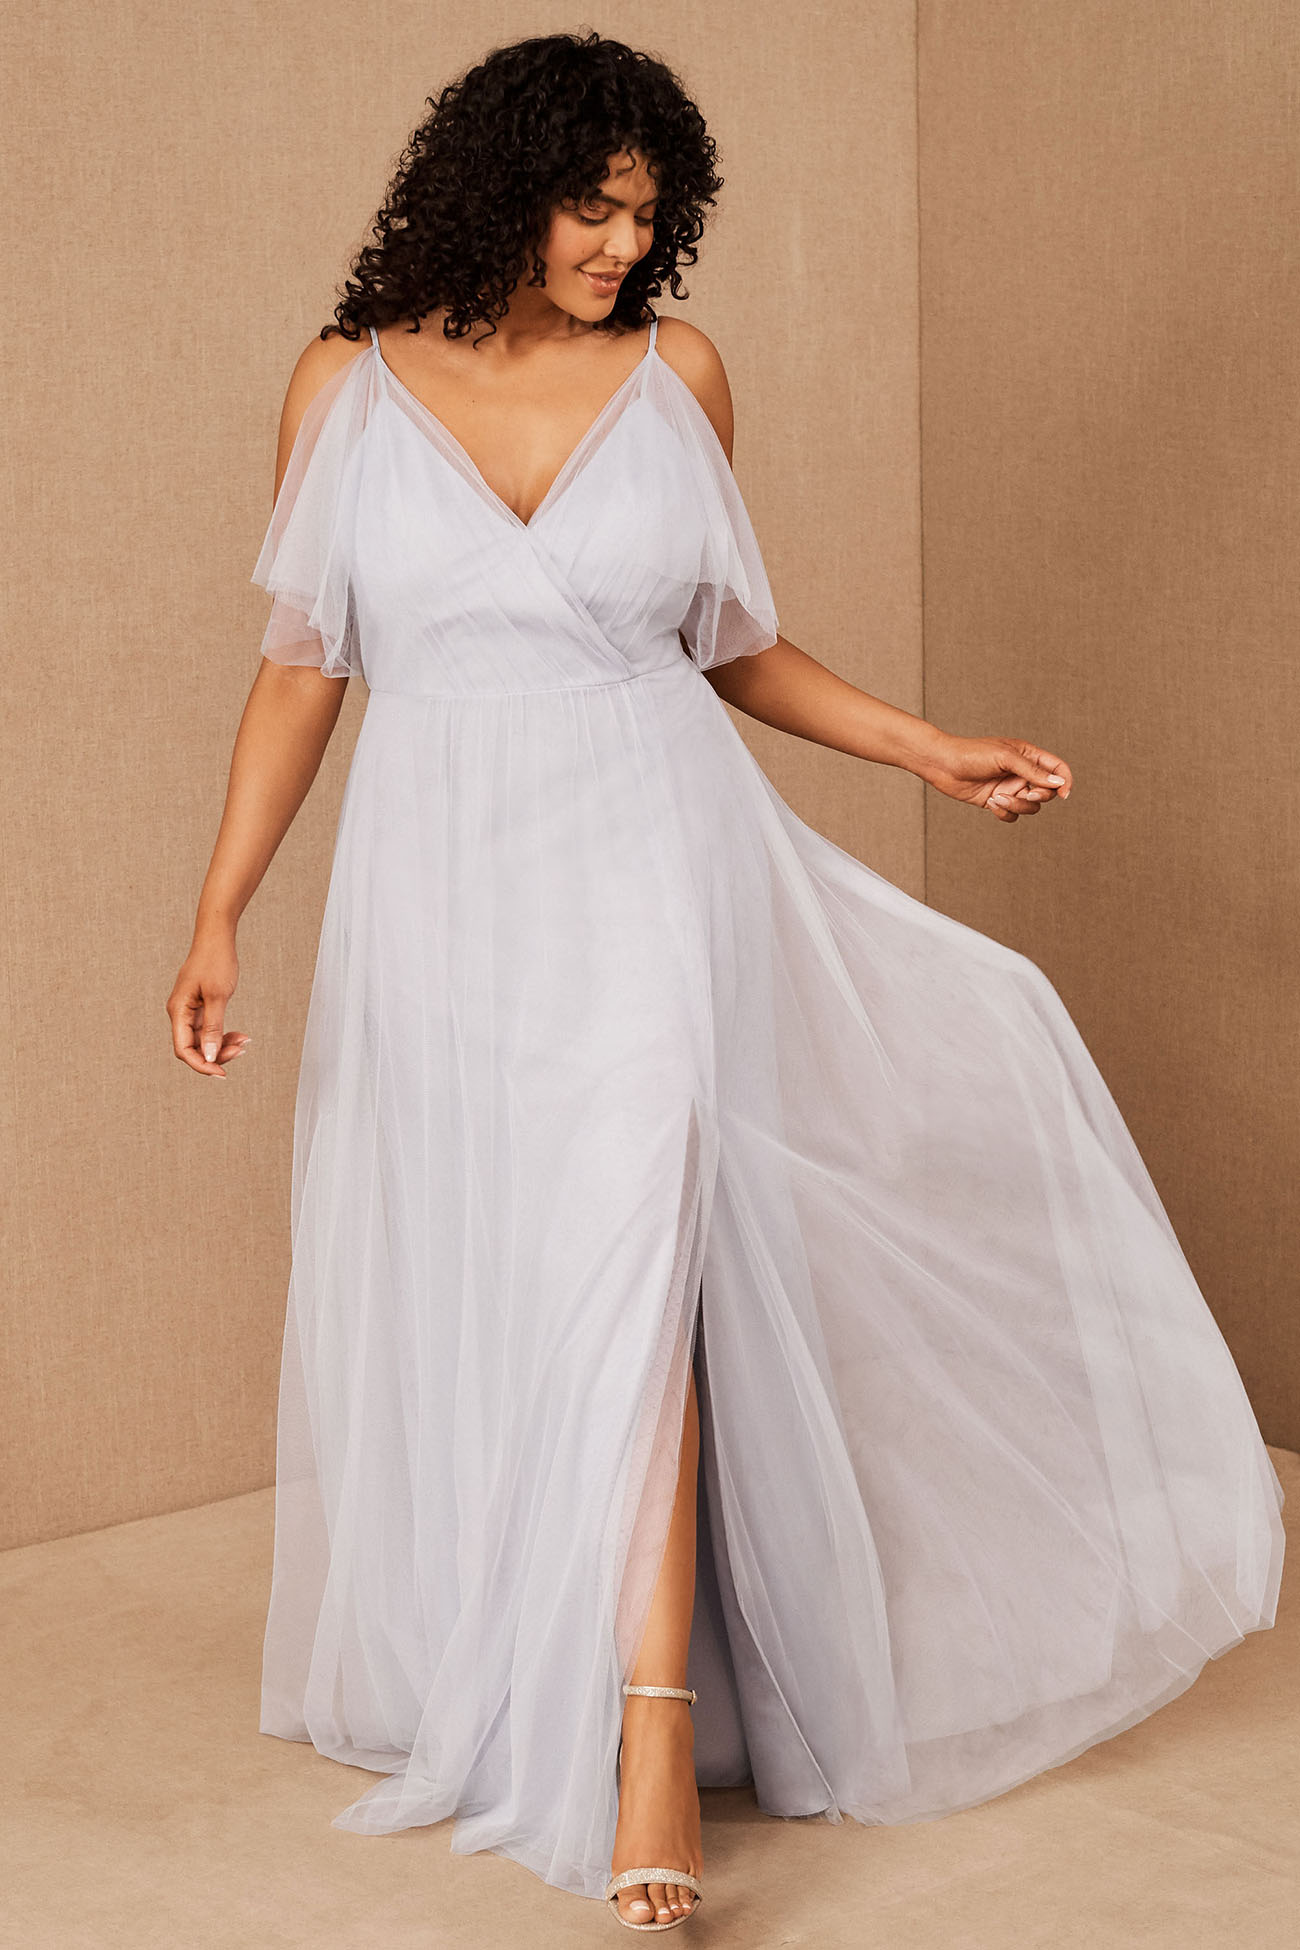 Aeryn Dress by BHLDN for bridesmaids